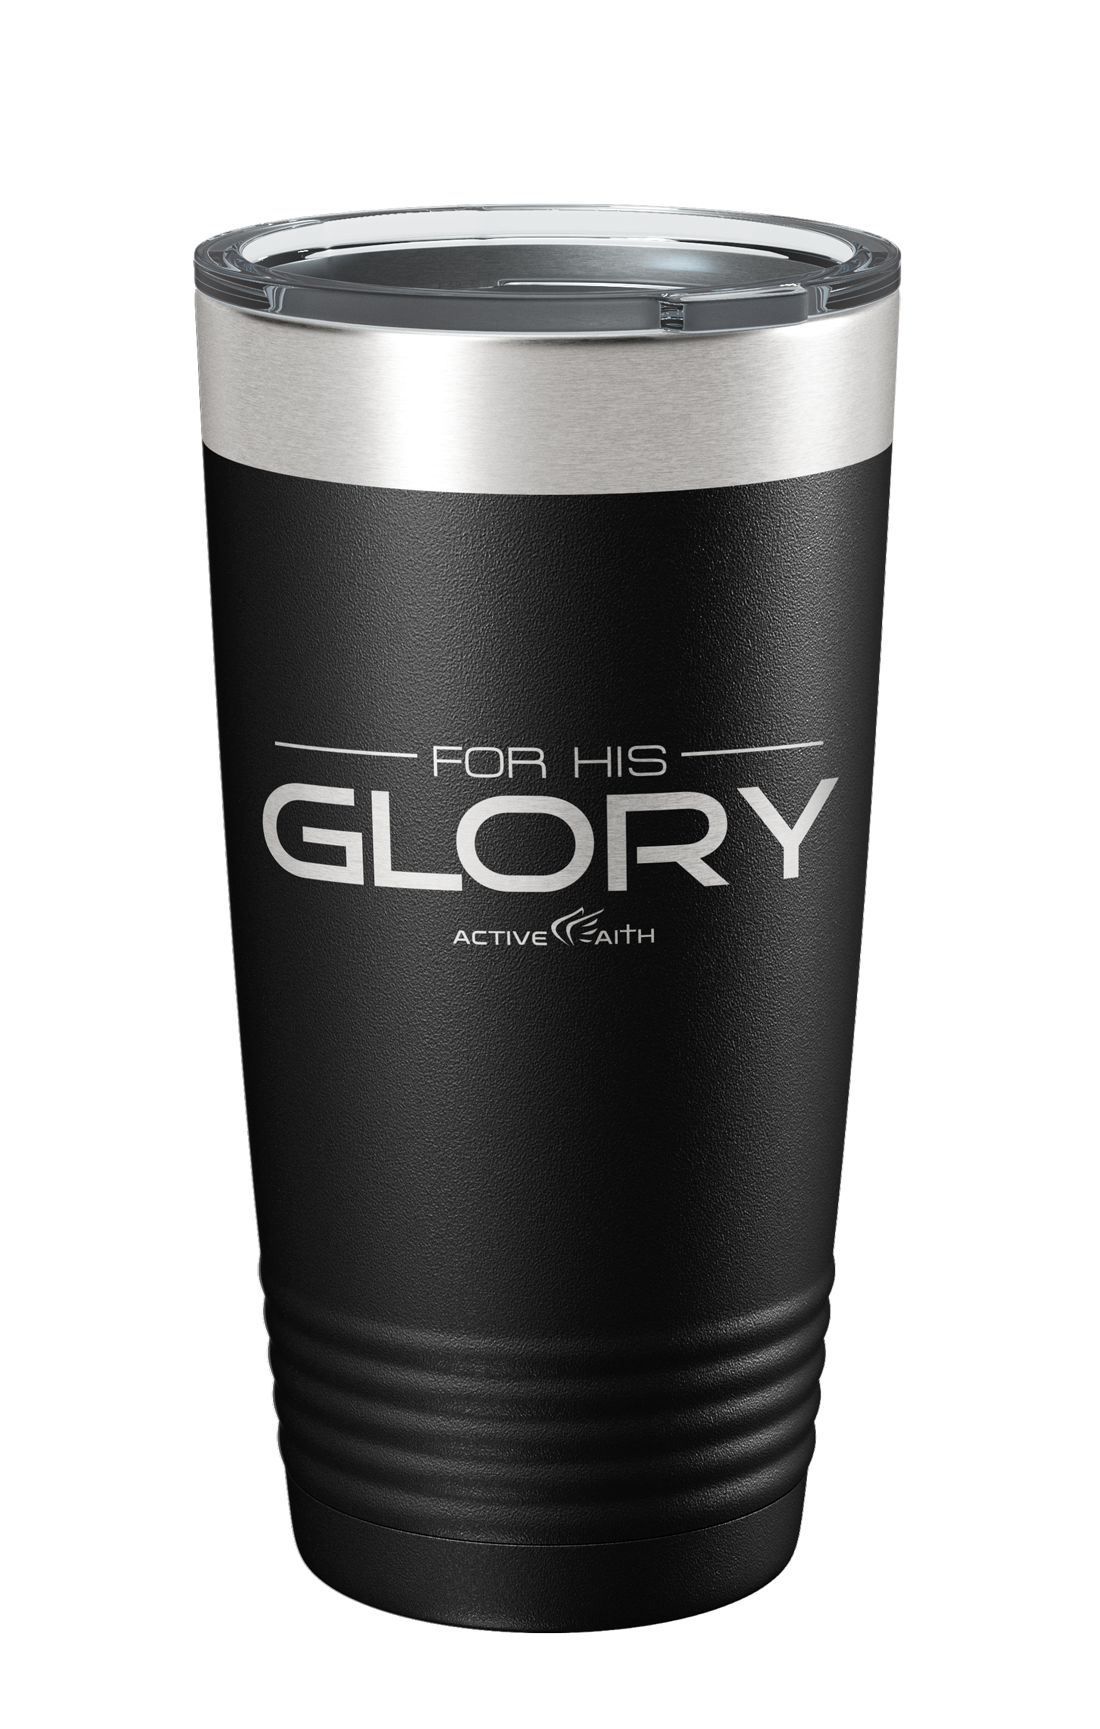 For His Glory Tumbler